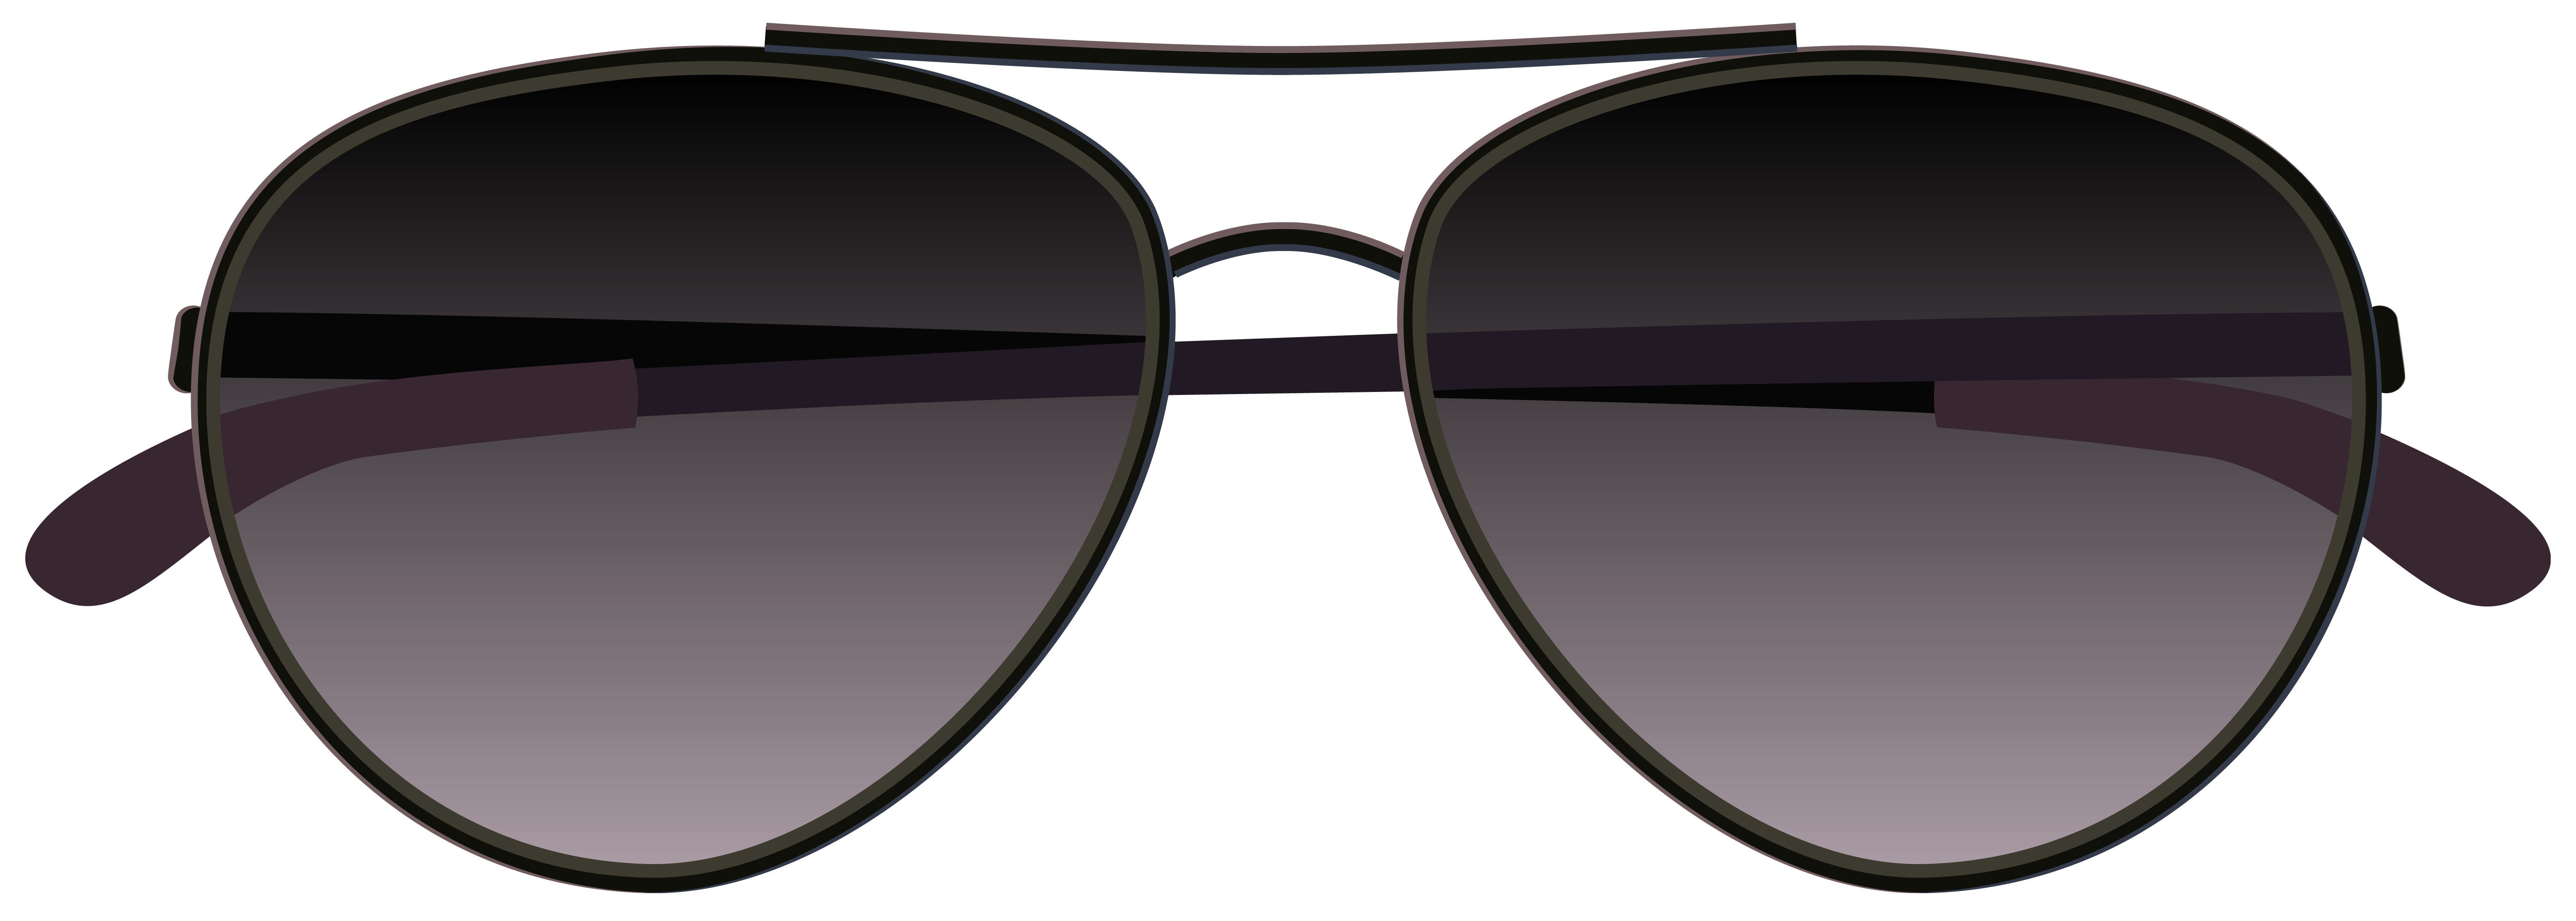 Png image gallery yopriceville. Clipart sunglasses silhouette